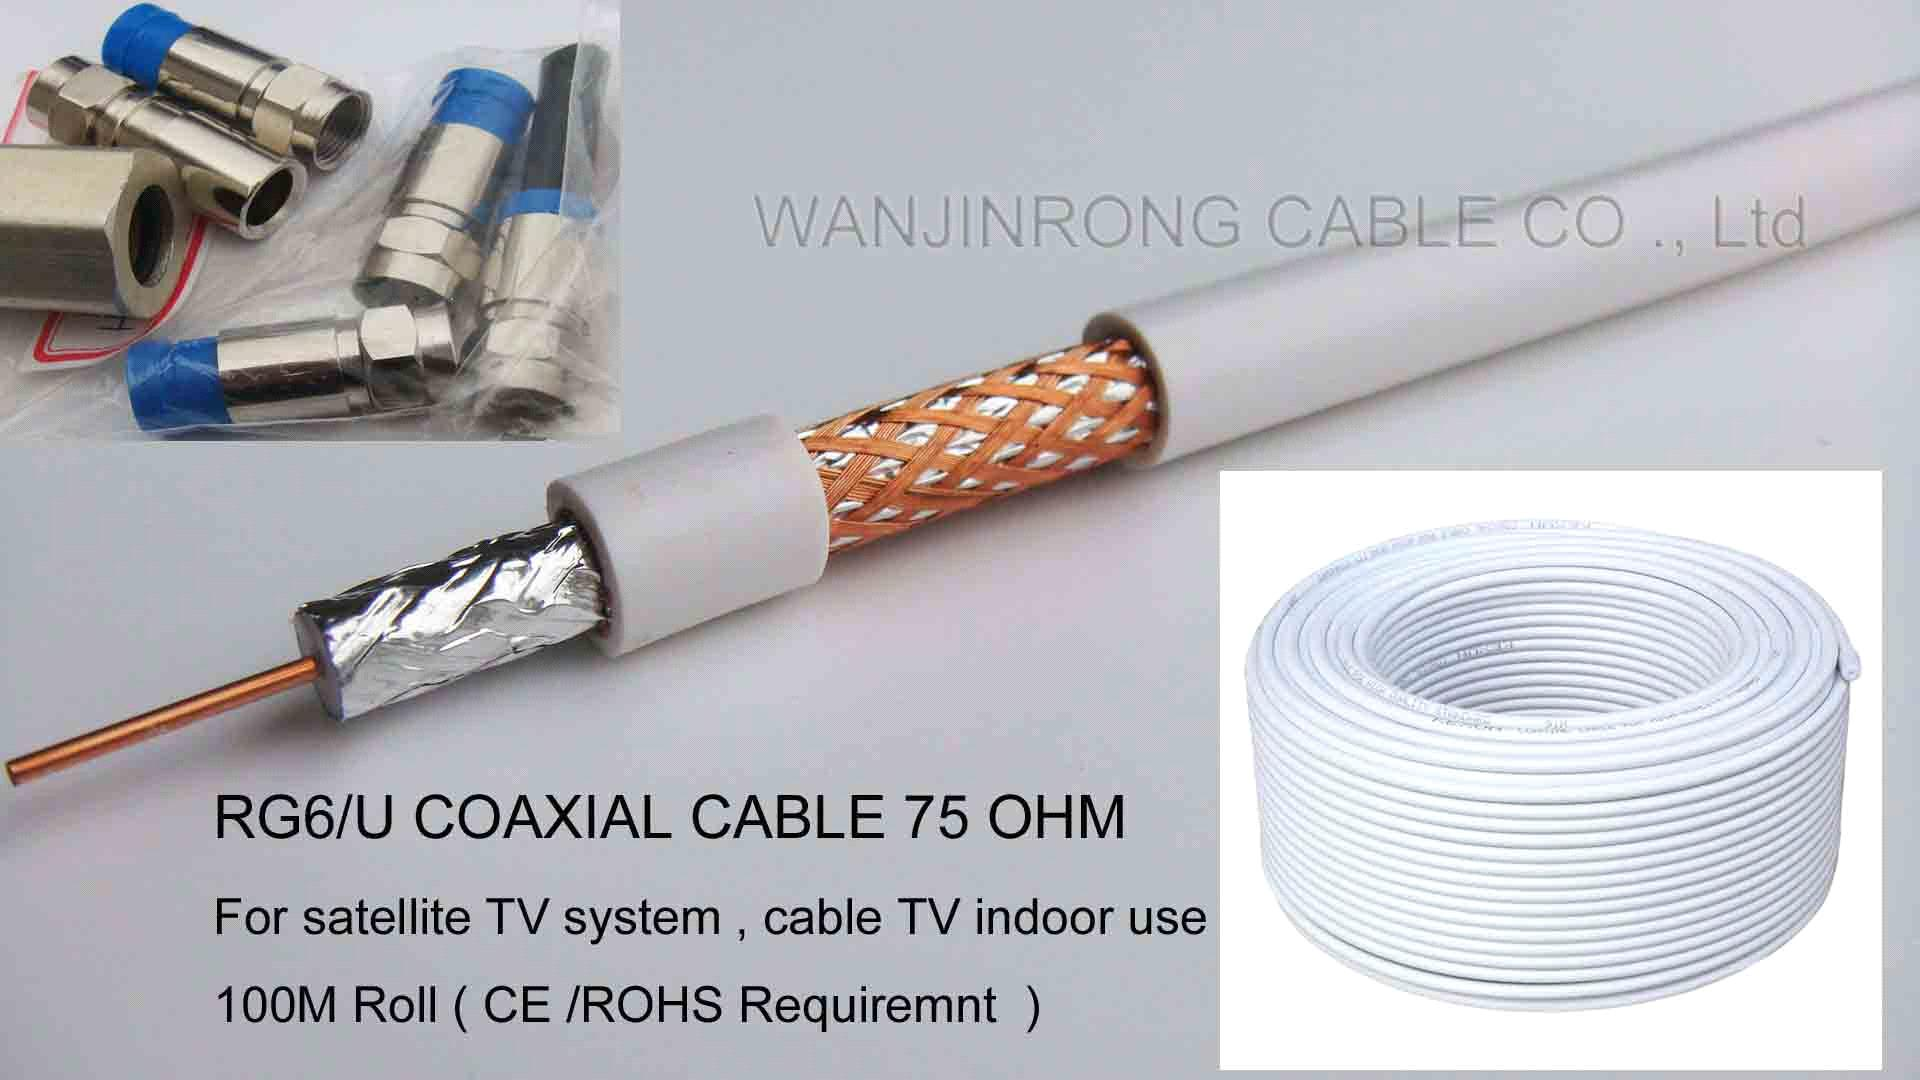 RG6U Cable, Satellite TV Cable, CCTV Cable, MATV Cable, HDTV Cable ...